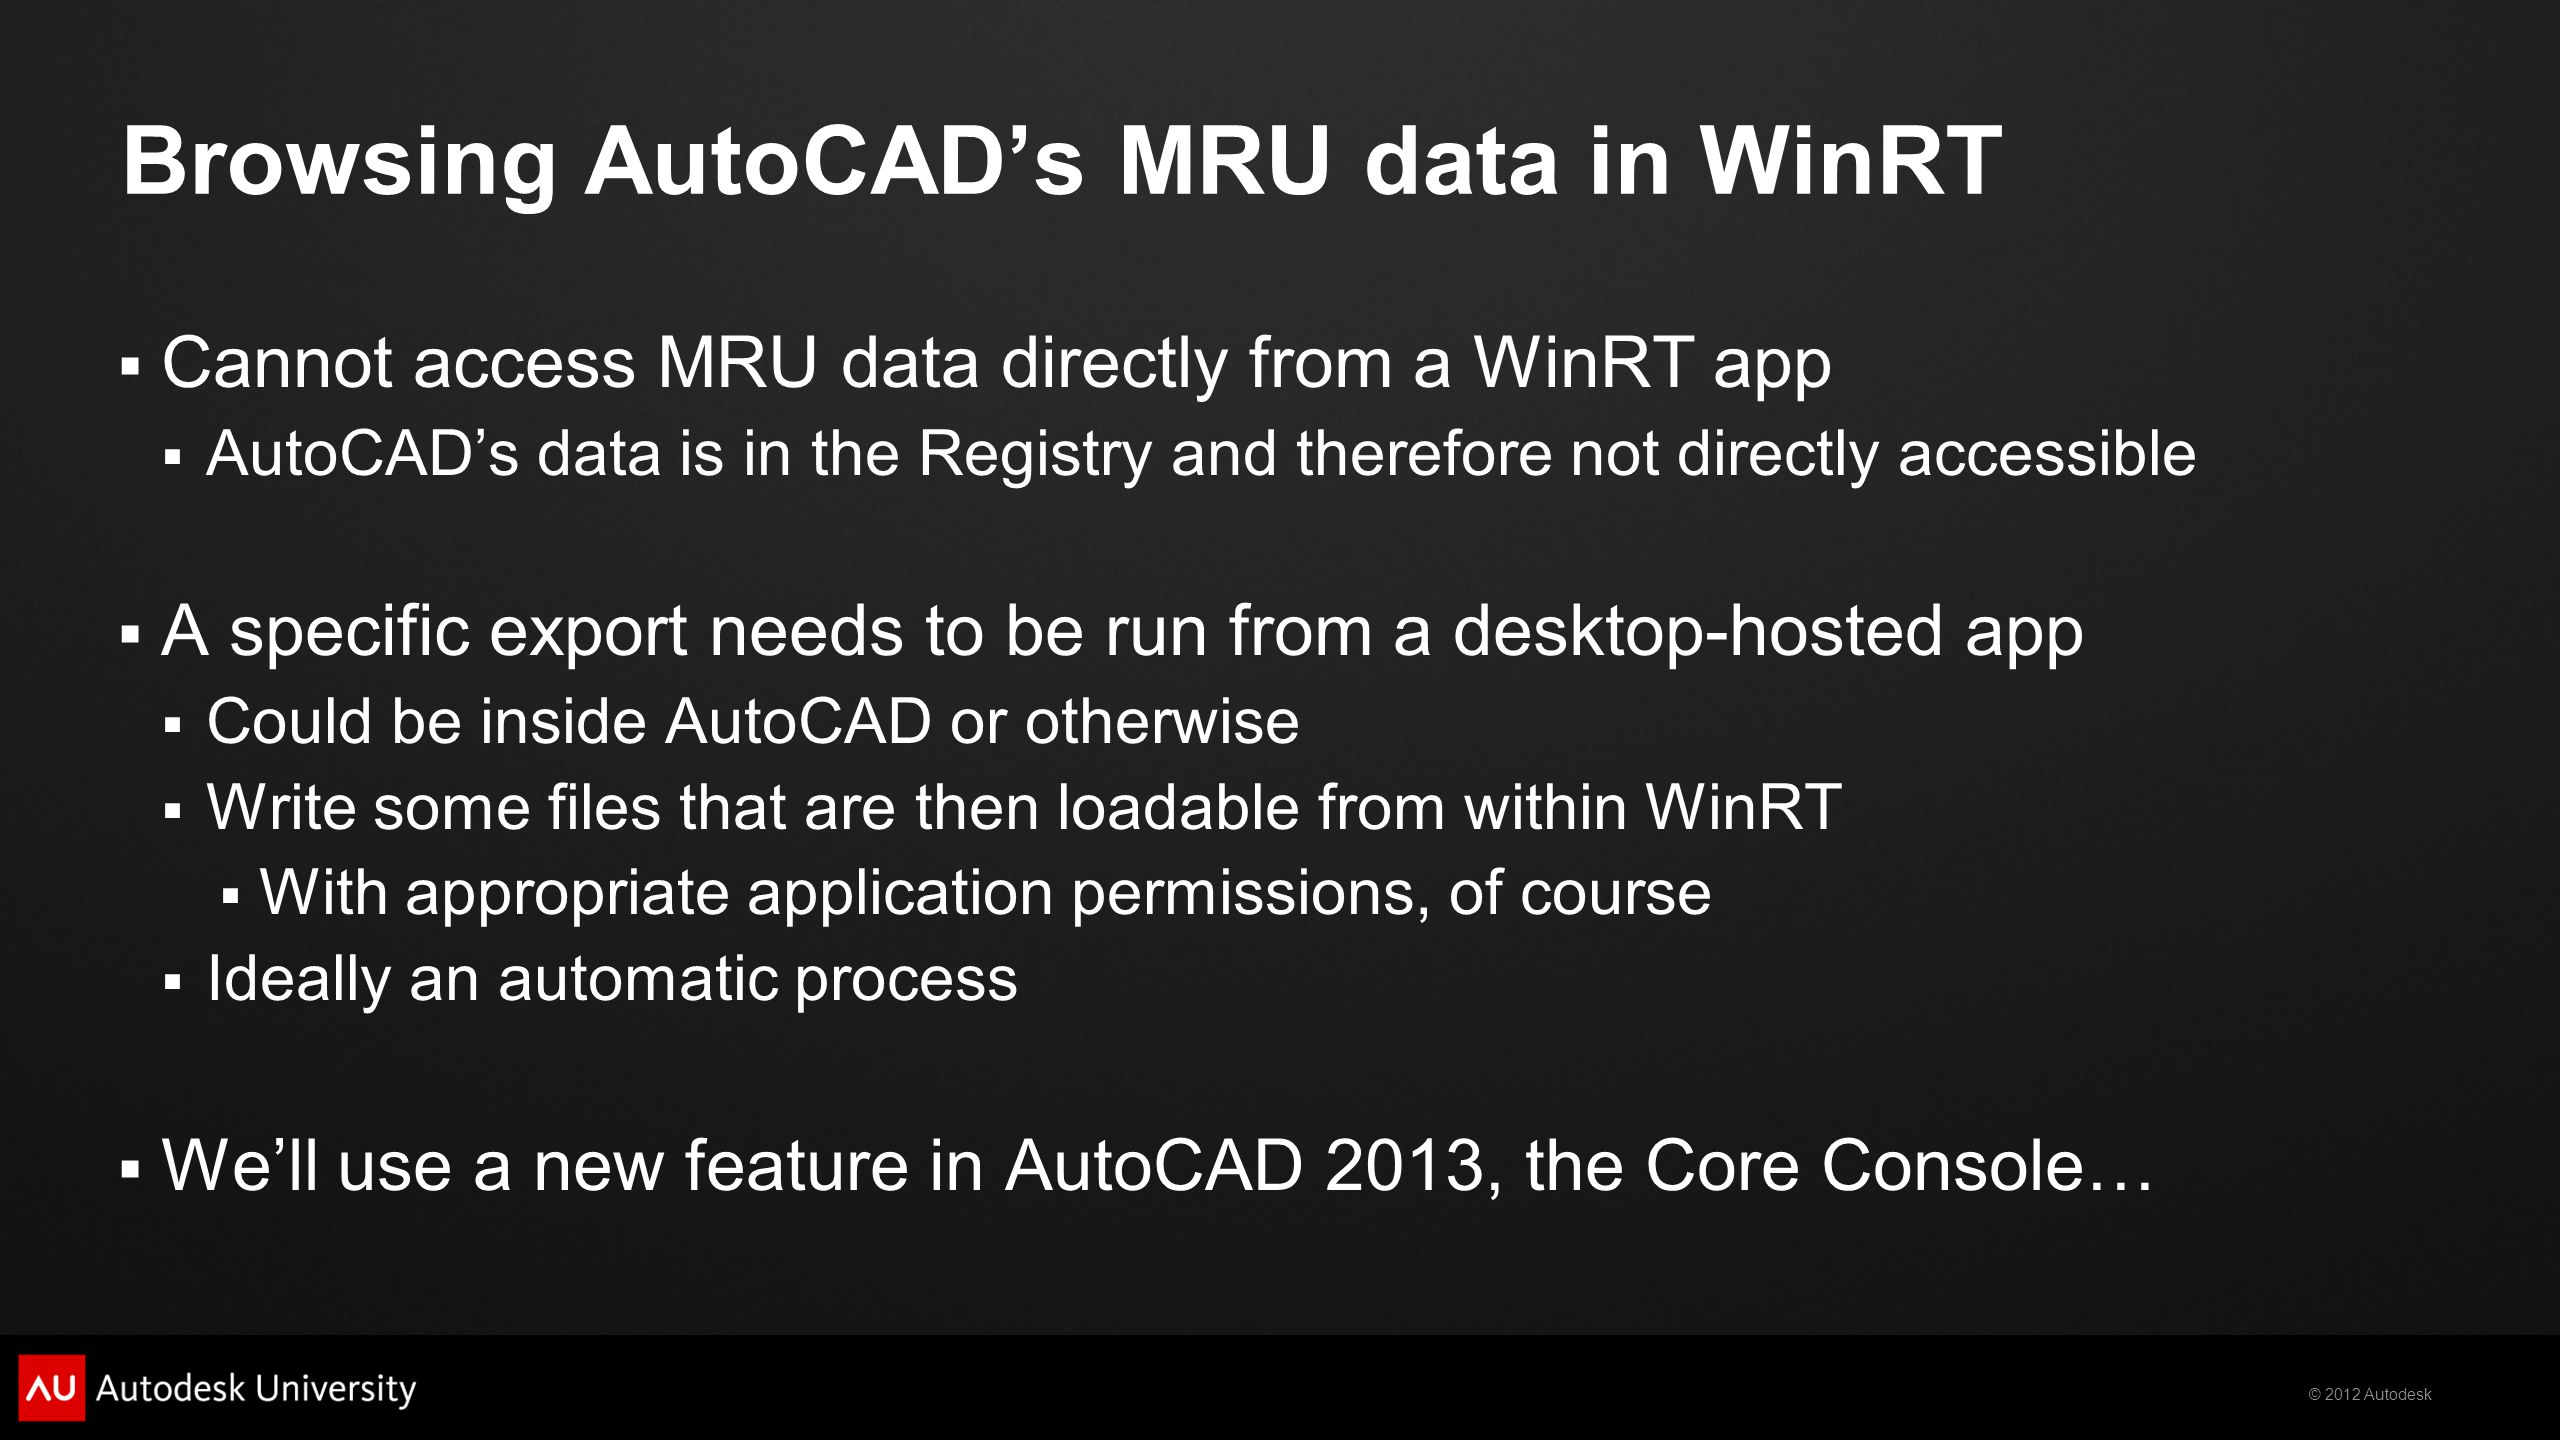 © 2012 Autodesk Browsing AutoCADs MRU data in WinRT Cannot access MRU data directly from a WinRT app AutoCADs data is in the Registry and therefore not directly accessible A specific export needs to be run from a desktop-hosted app Could be inside AutoCAD or otherwise Write some files that are then loadable from within WinRT With appropriate application permissions, of course Ideally an automatic process Well use a new feature in AutoCAD 2013, the Core Console…